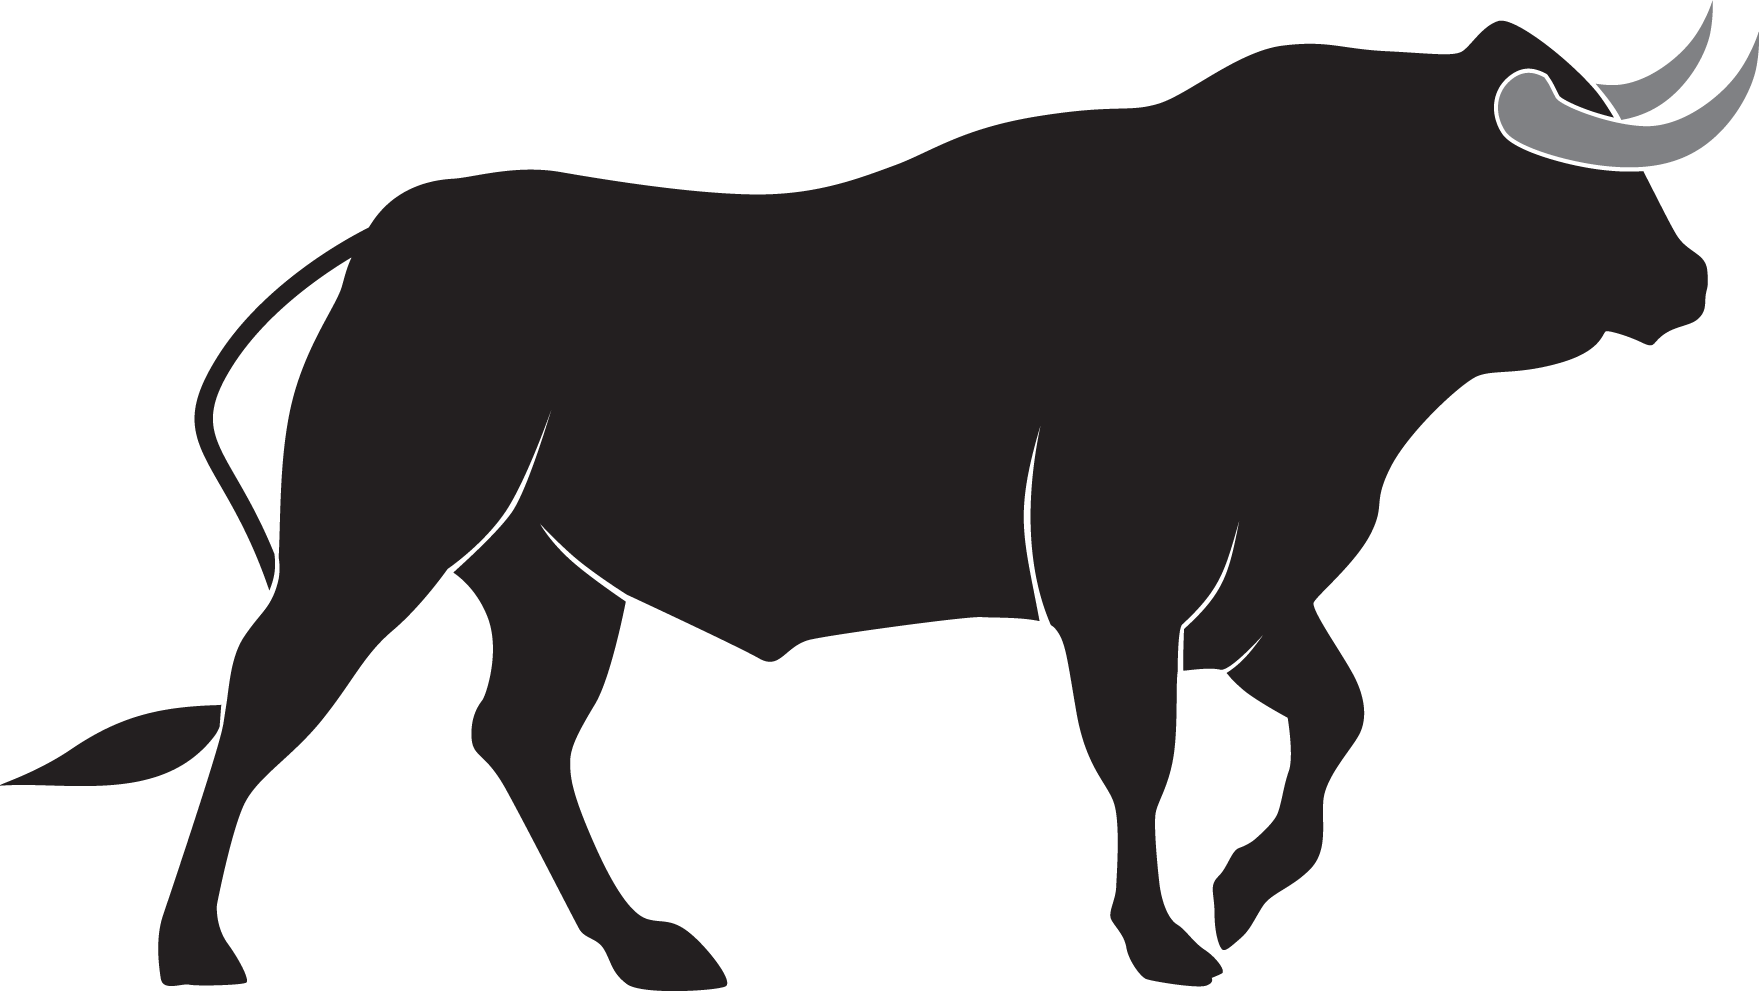 Bull clipart black and white clipart images gallery for free.